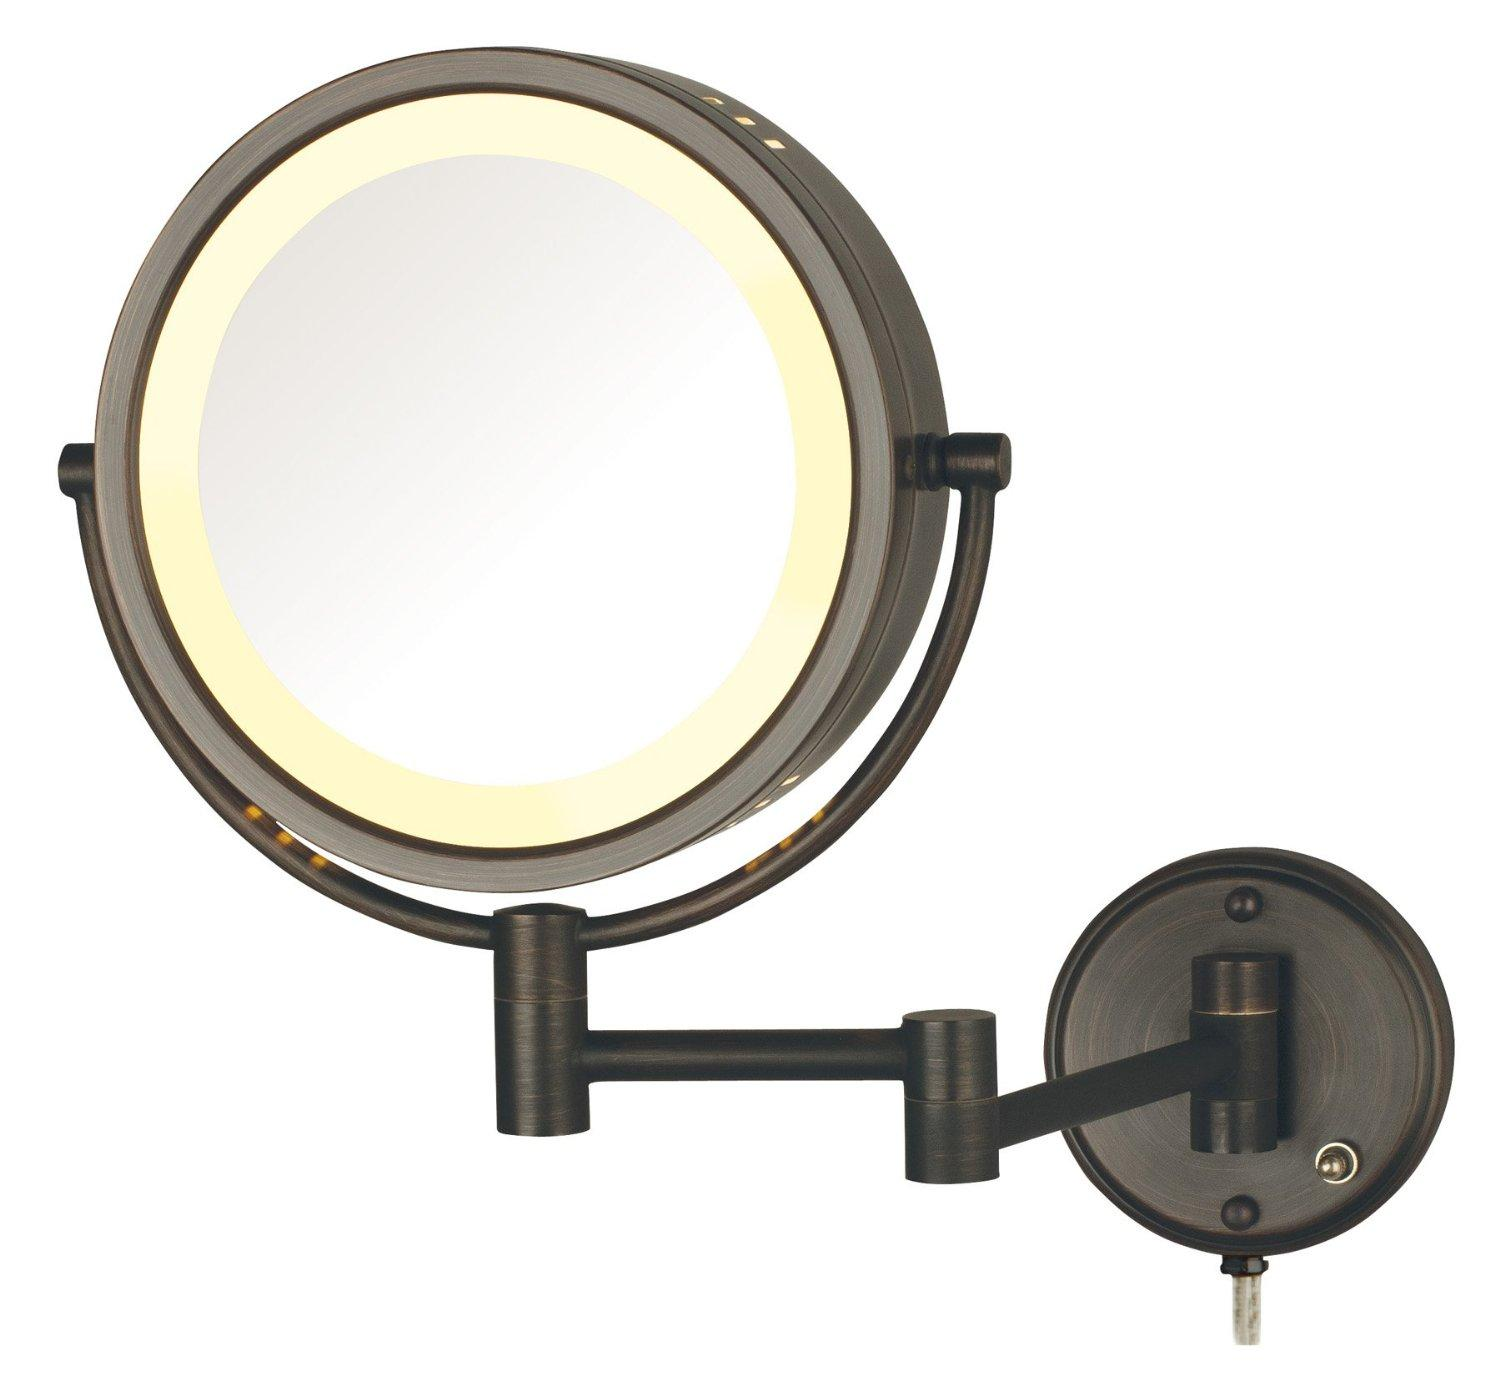 jerdon hl75bz 8 5 inch lighted wall mount makeup mirror with 8x magnification. Black Bedroom Furniture Sets. Home Design Ideas